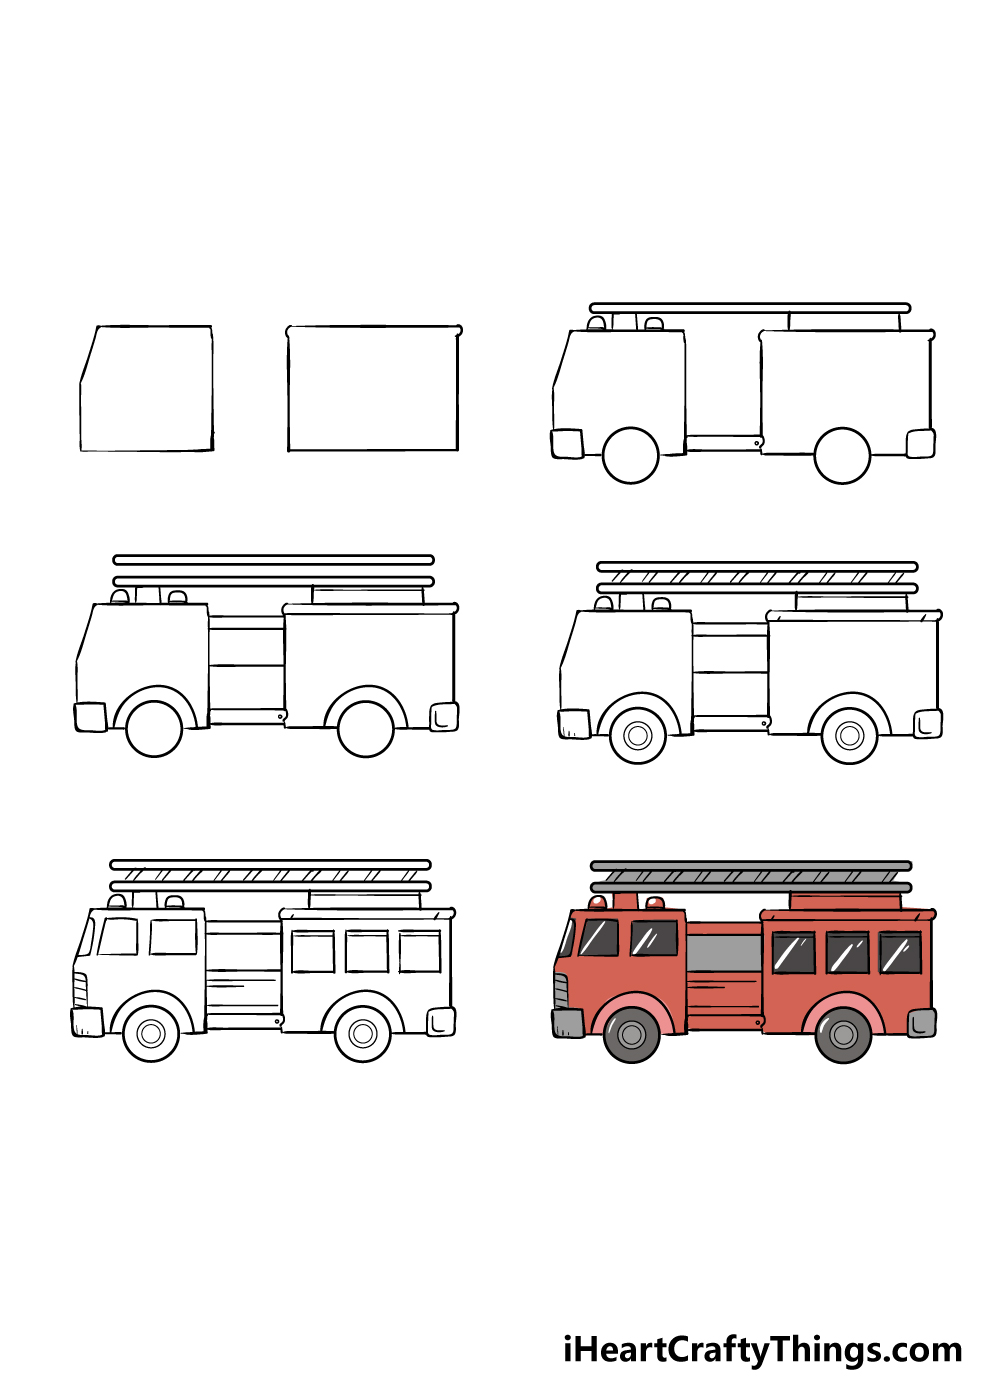 how to draw fire truck in 6 steps